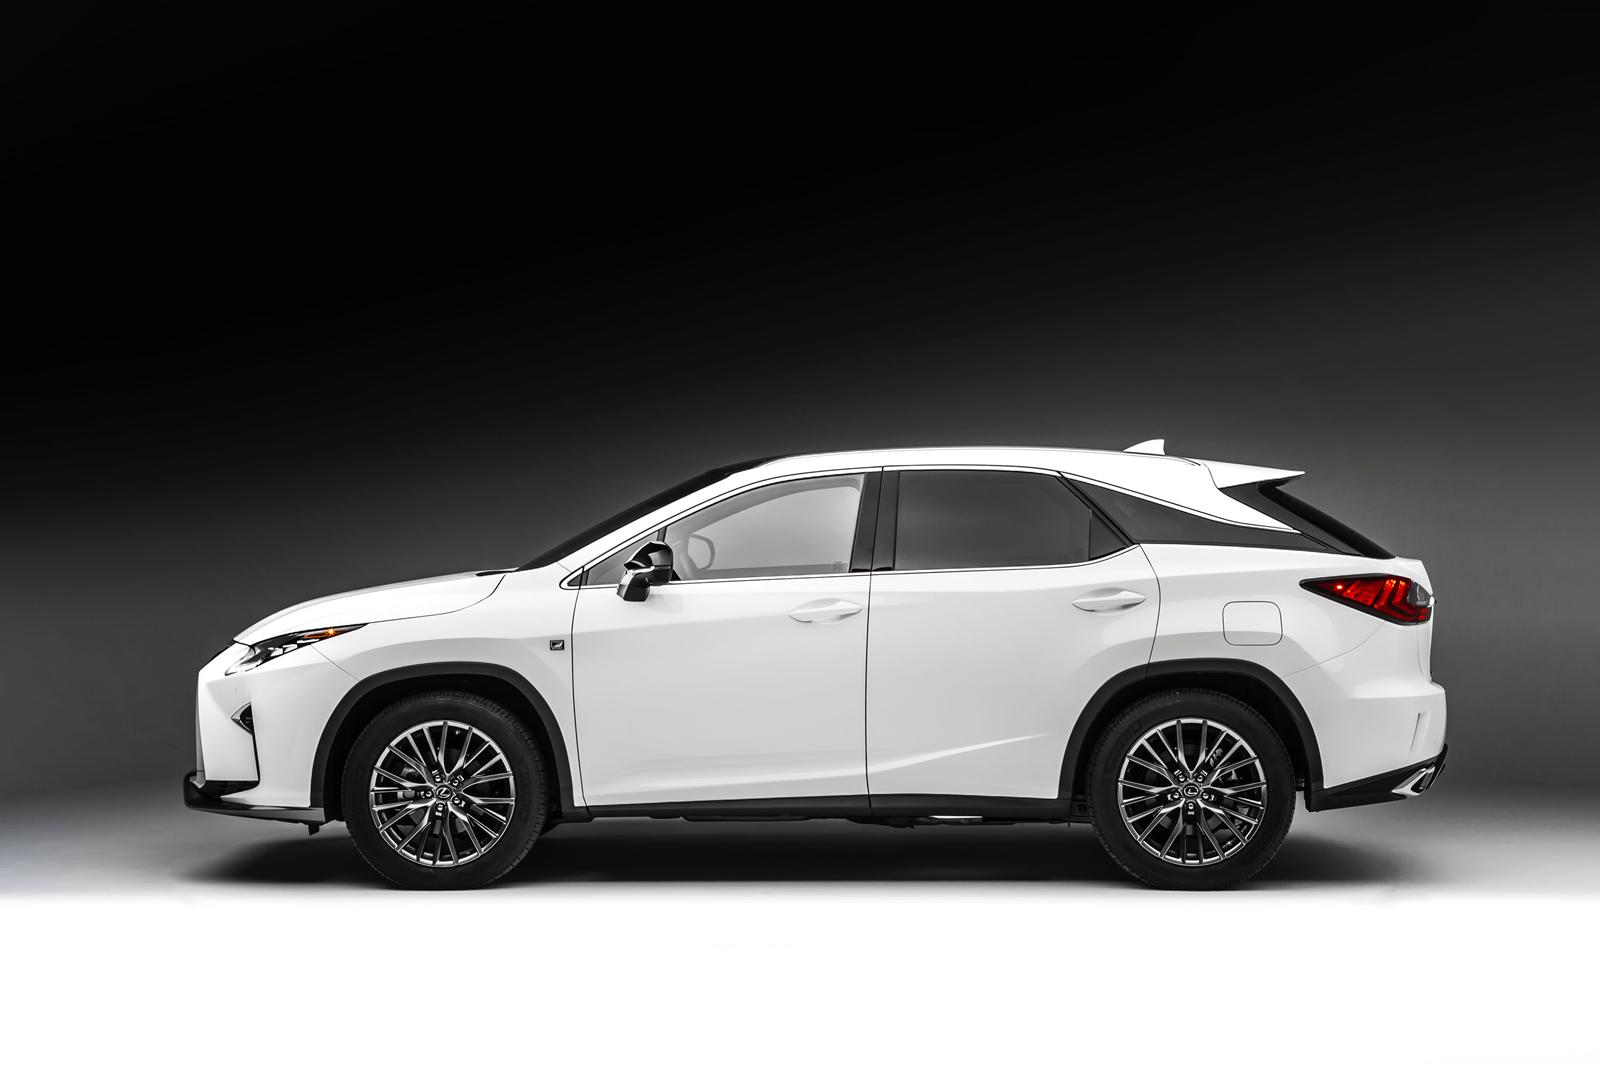 How much does it cost to lease a lexus